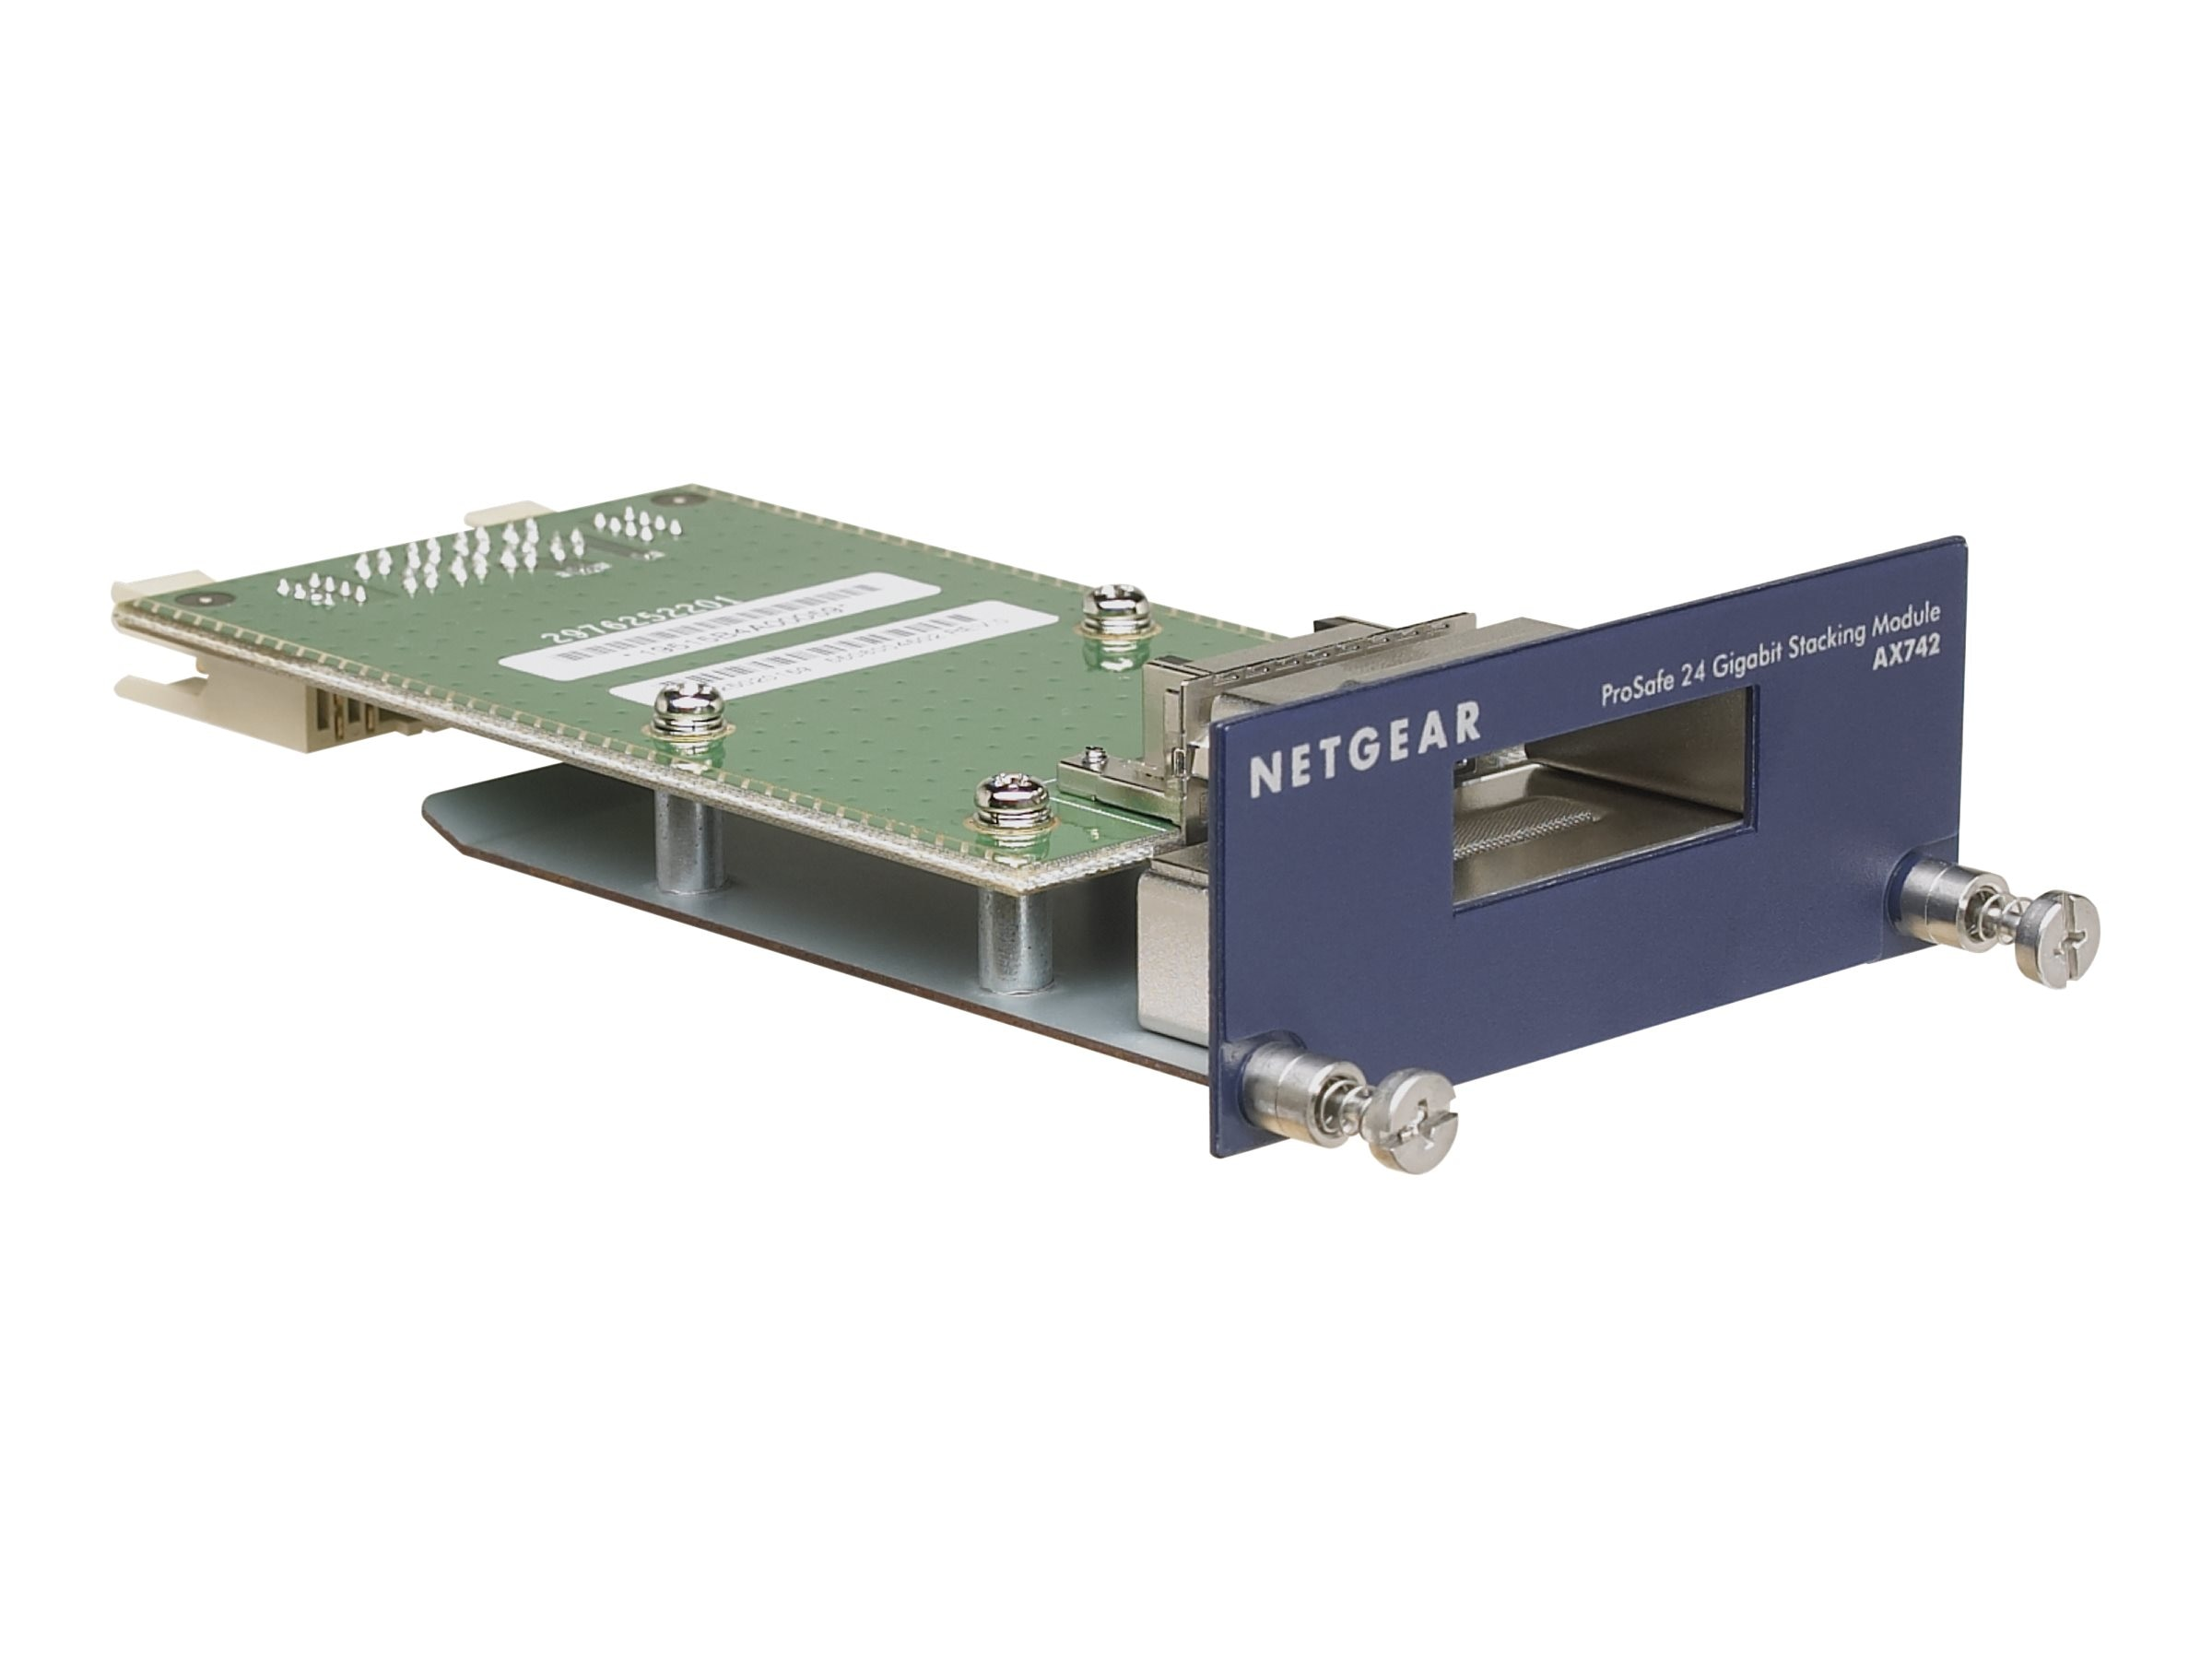 Netgear ProSafe AX742 24Gbps Stacking Kit